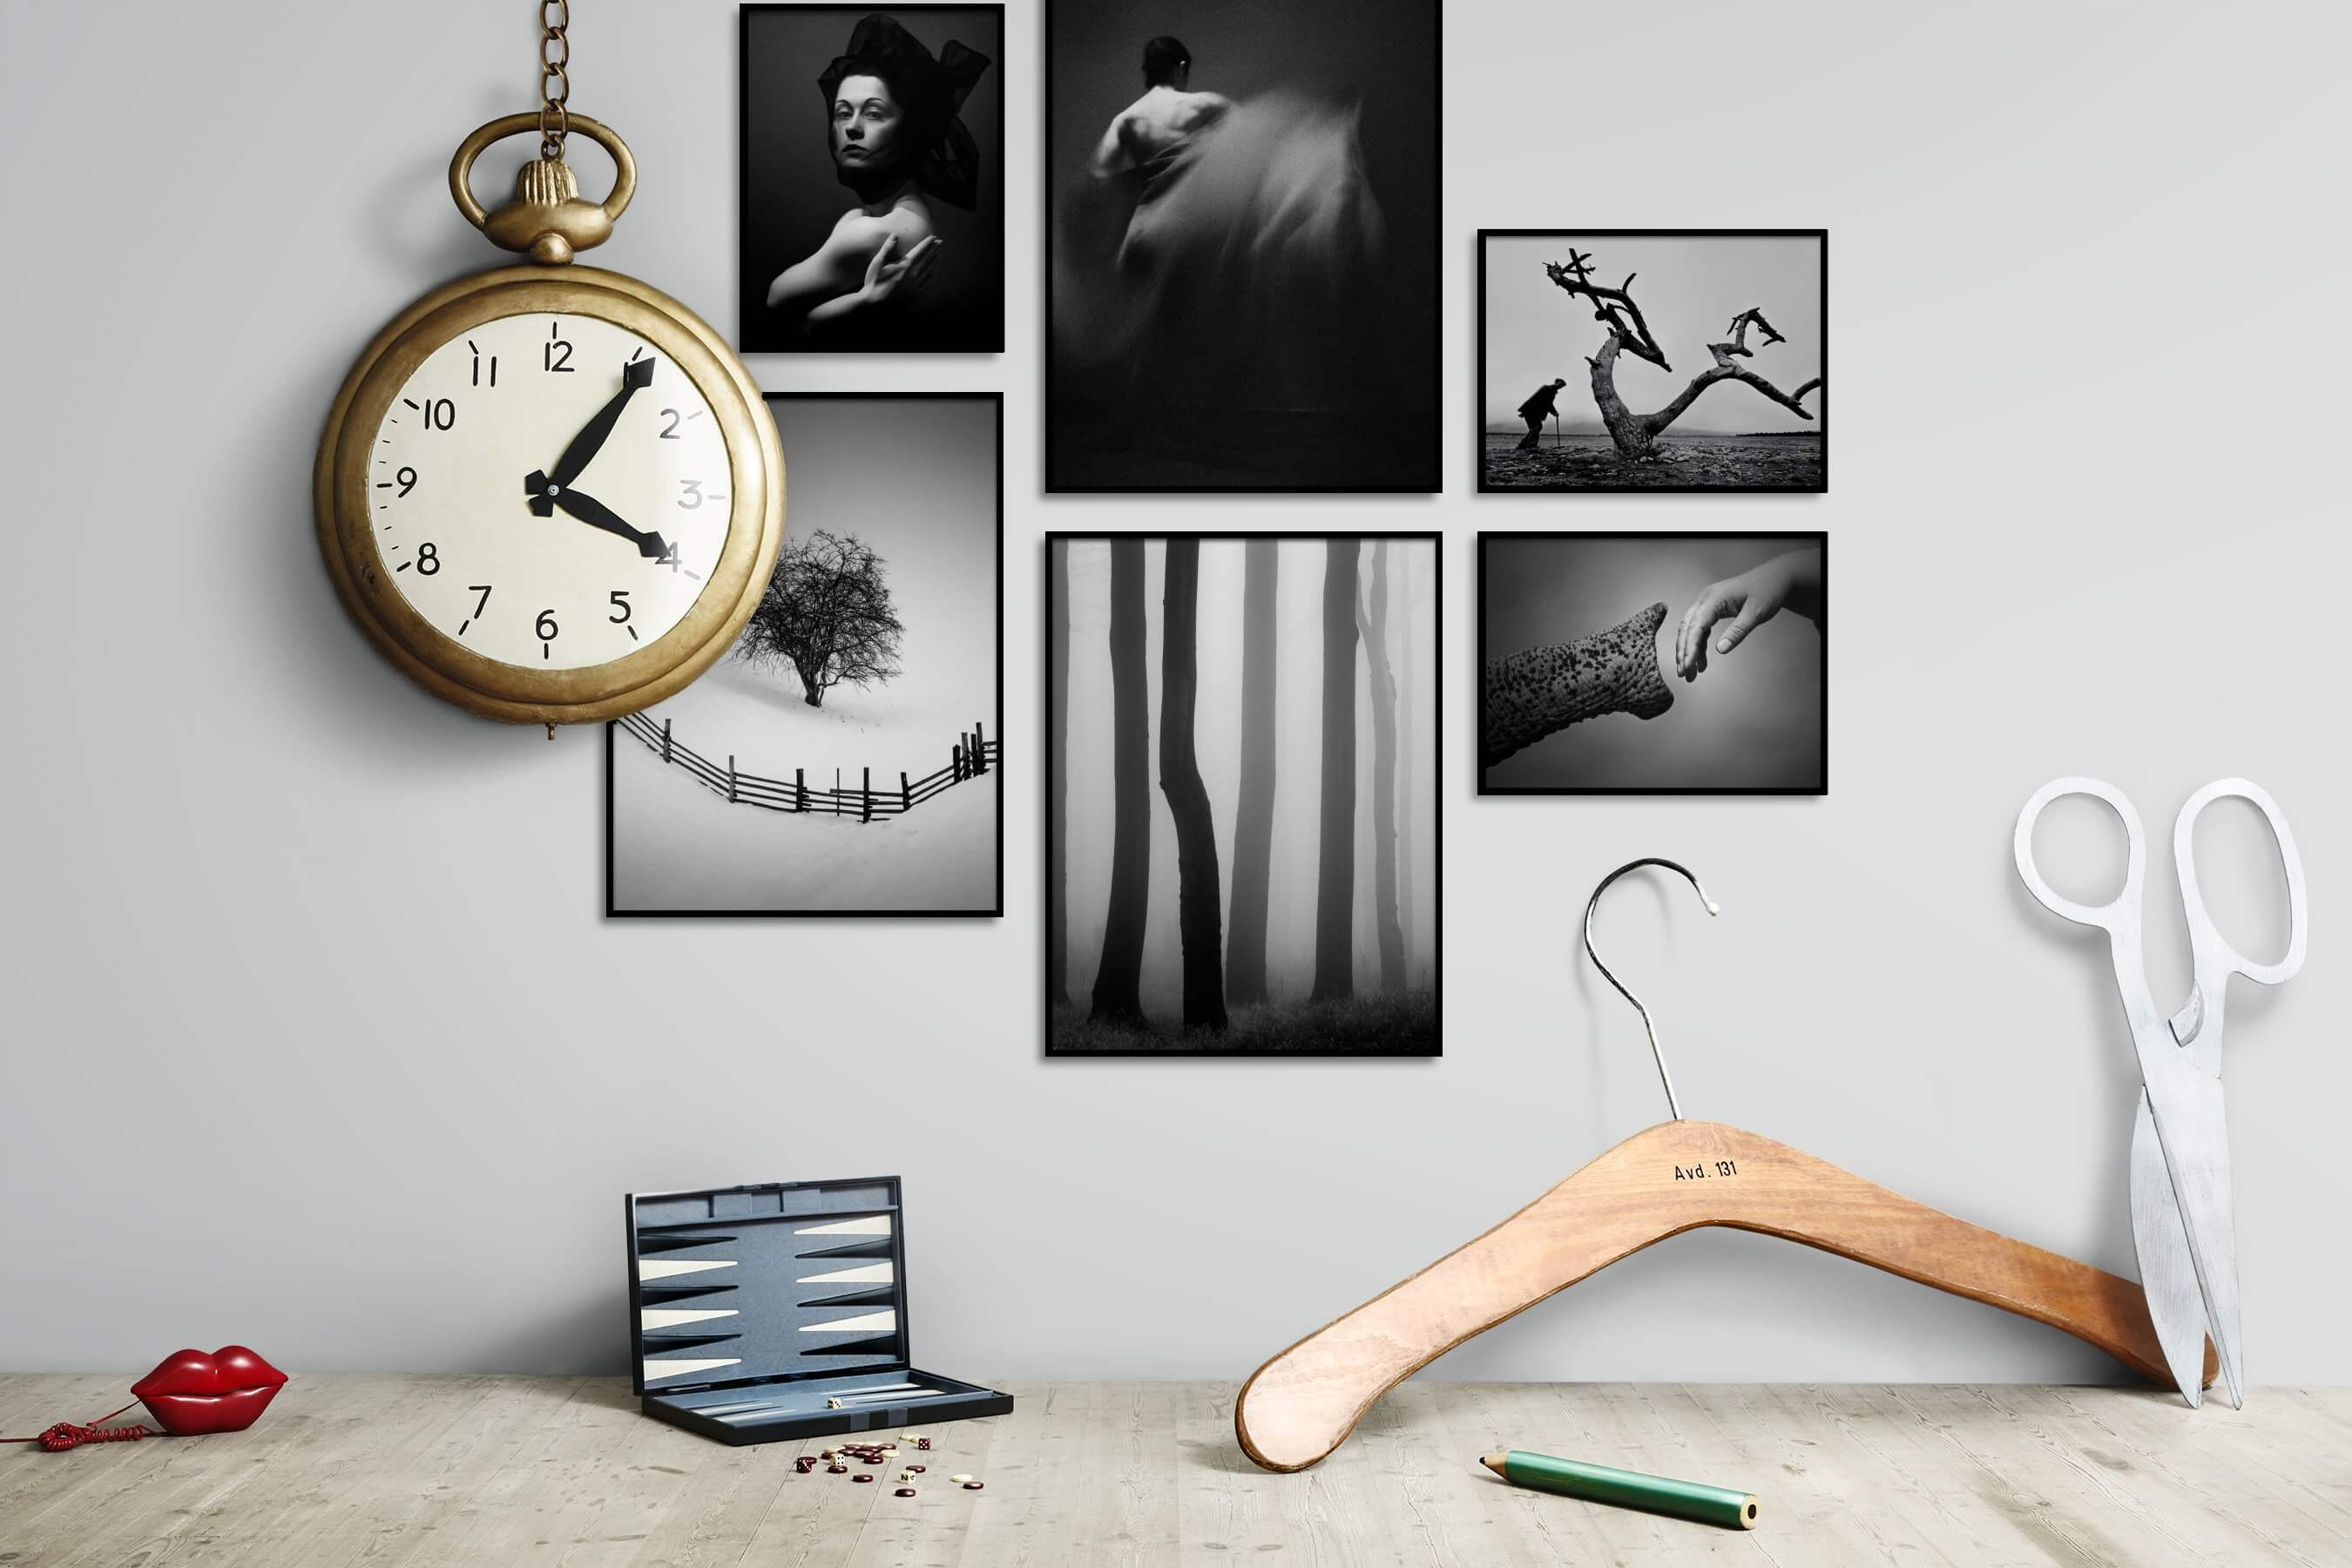 Gallery wall idea with six framed pictures arranged on a wall depicting Fashion & Beauty, Black & White, Dark Tones, For the Minimalist, Country Life, For the Moderate, Nature, and Animals